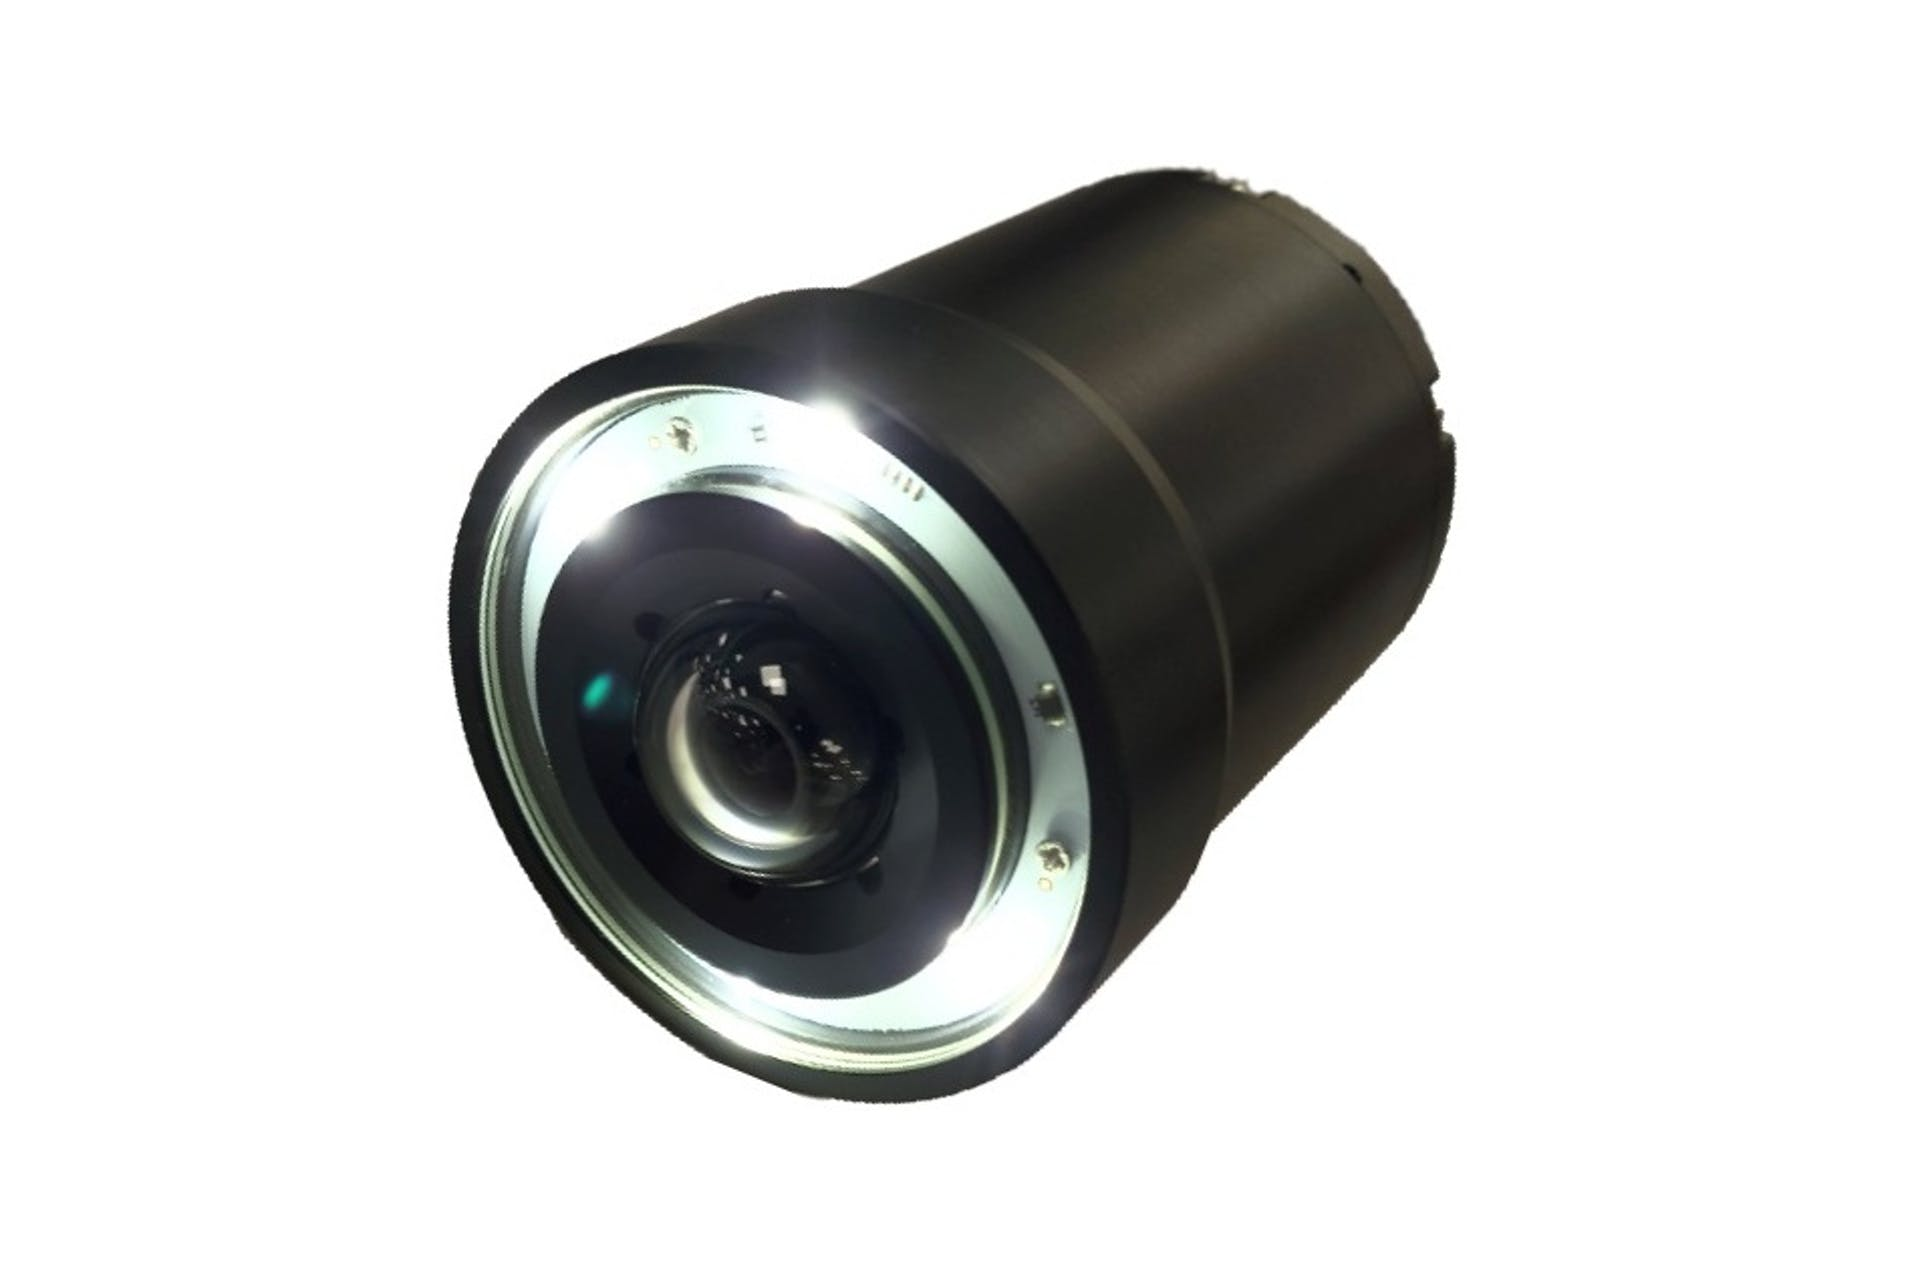 Labrus L wide angel shallow water ip camera with light – Kopi